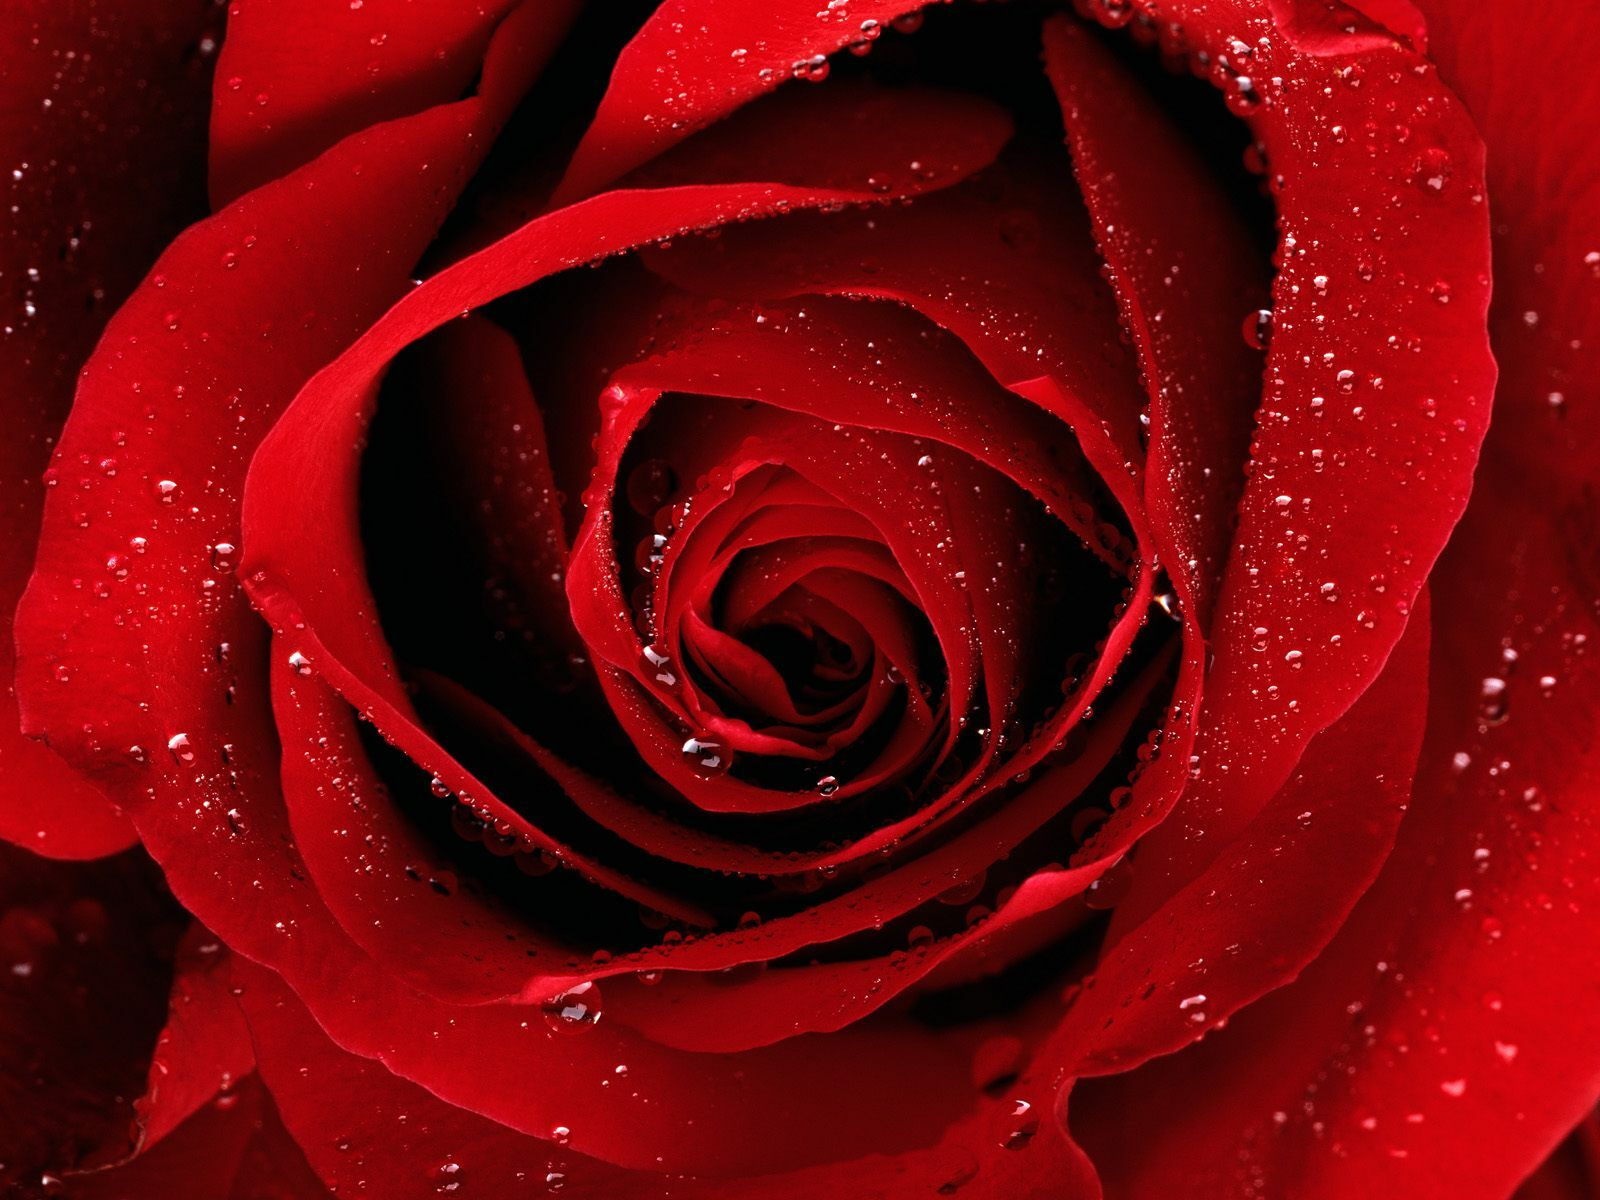 Hd wallpaper rose - Red Rose Hd